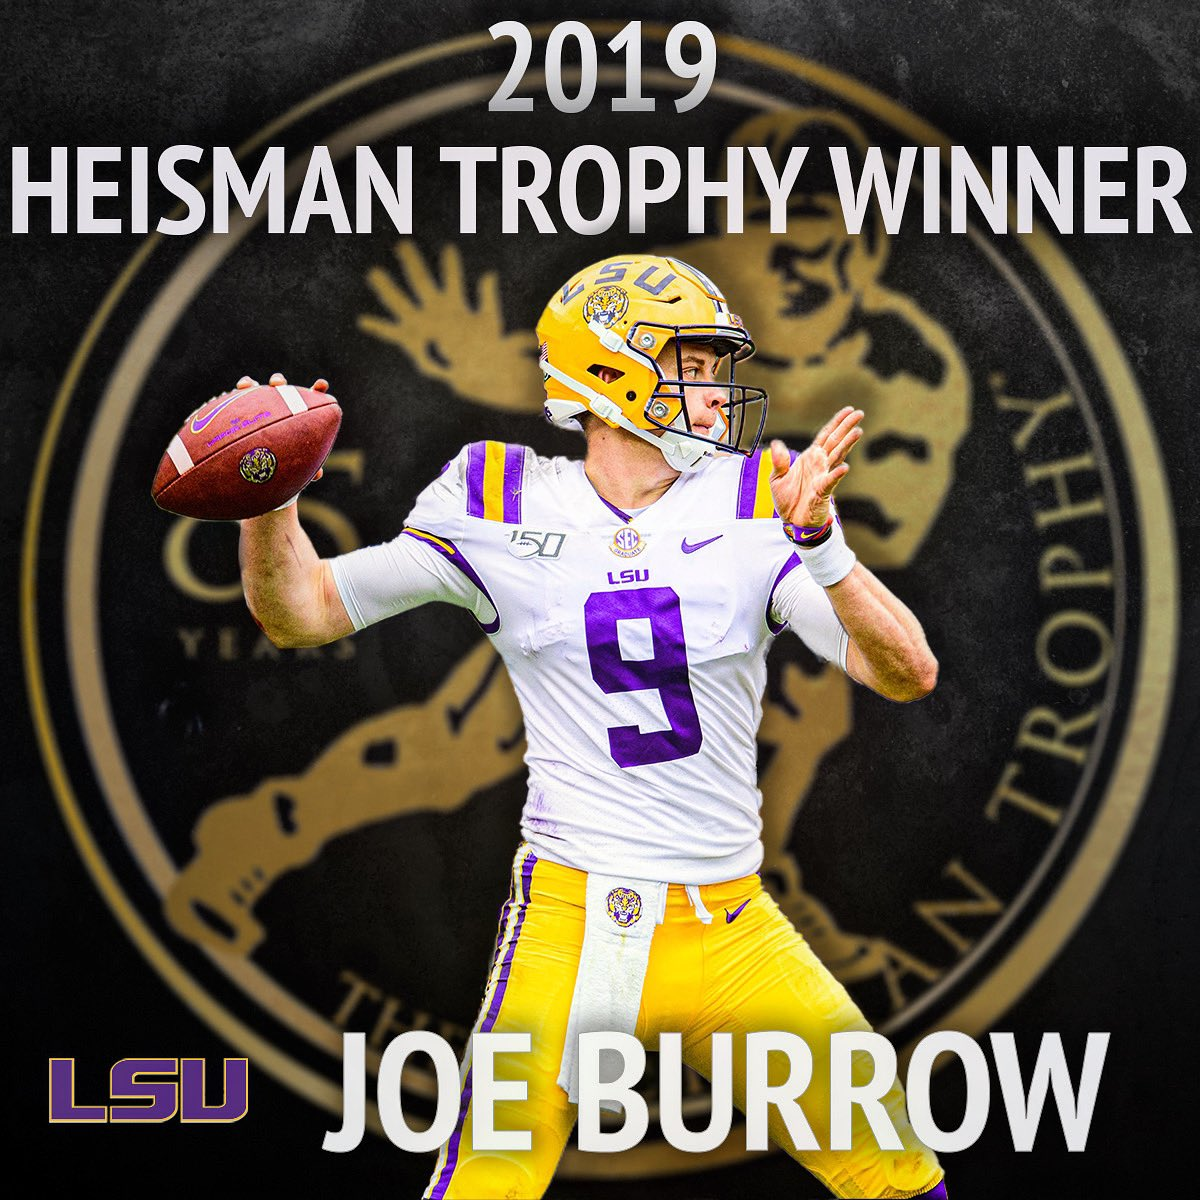 @HeismanTrophy's photo on #HeismanTrophy